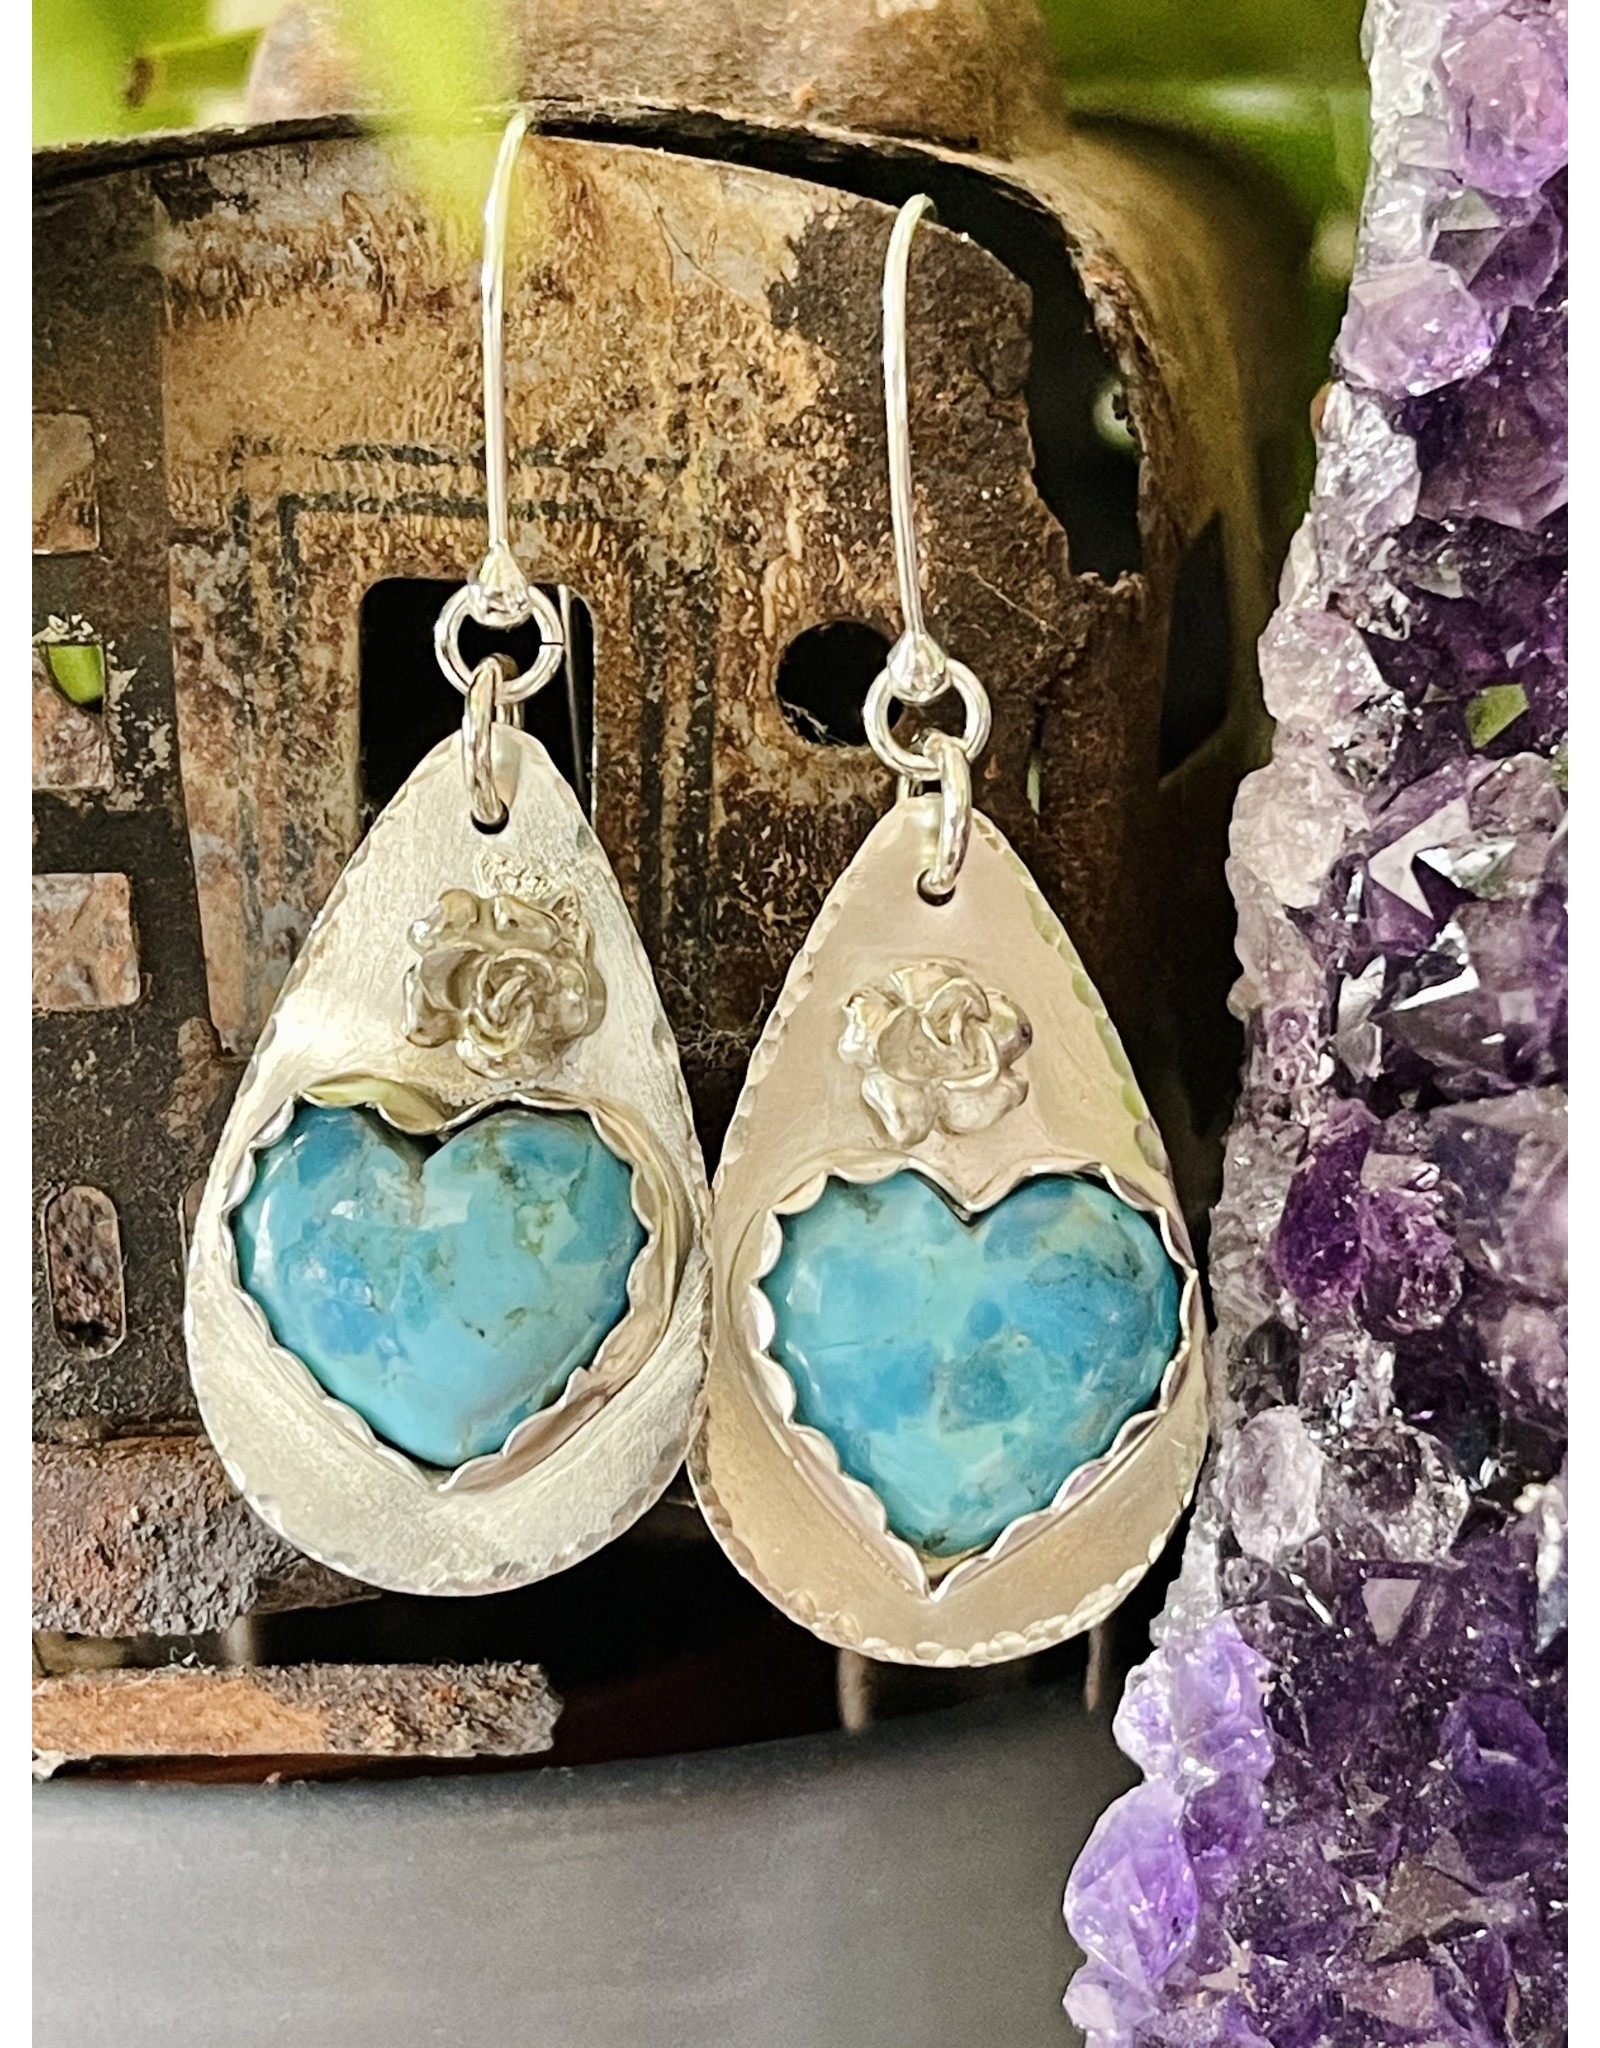 Annette Colby - Jeweler Turquoise Heart Earrings with Rose - Annette Colby